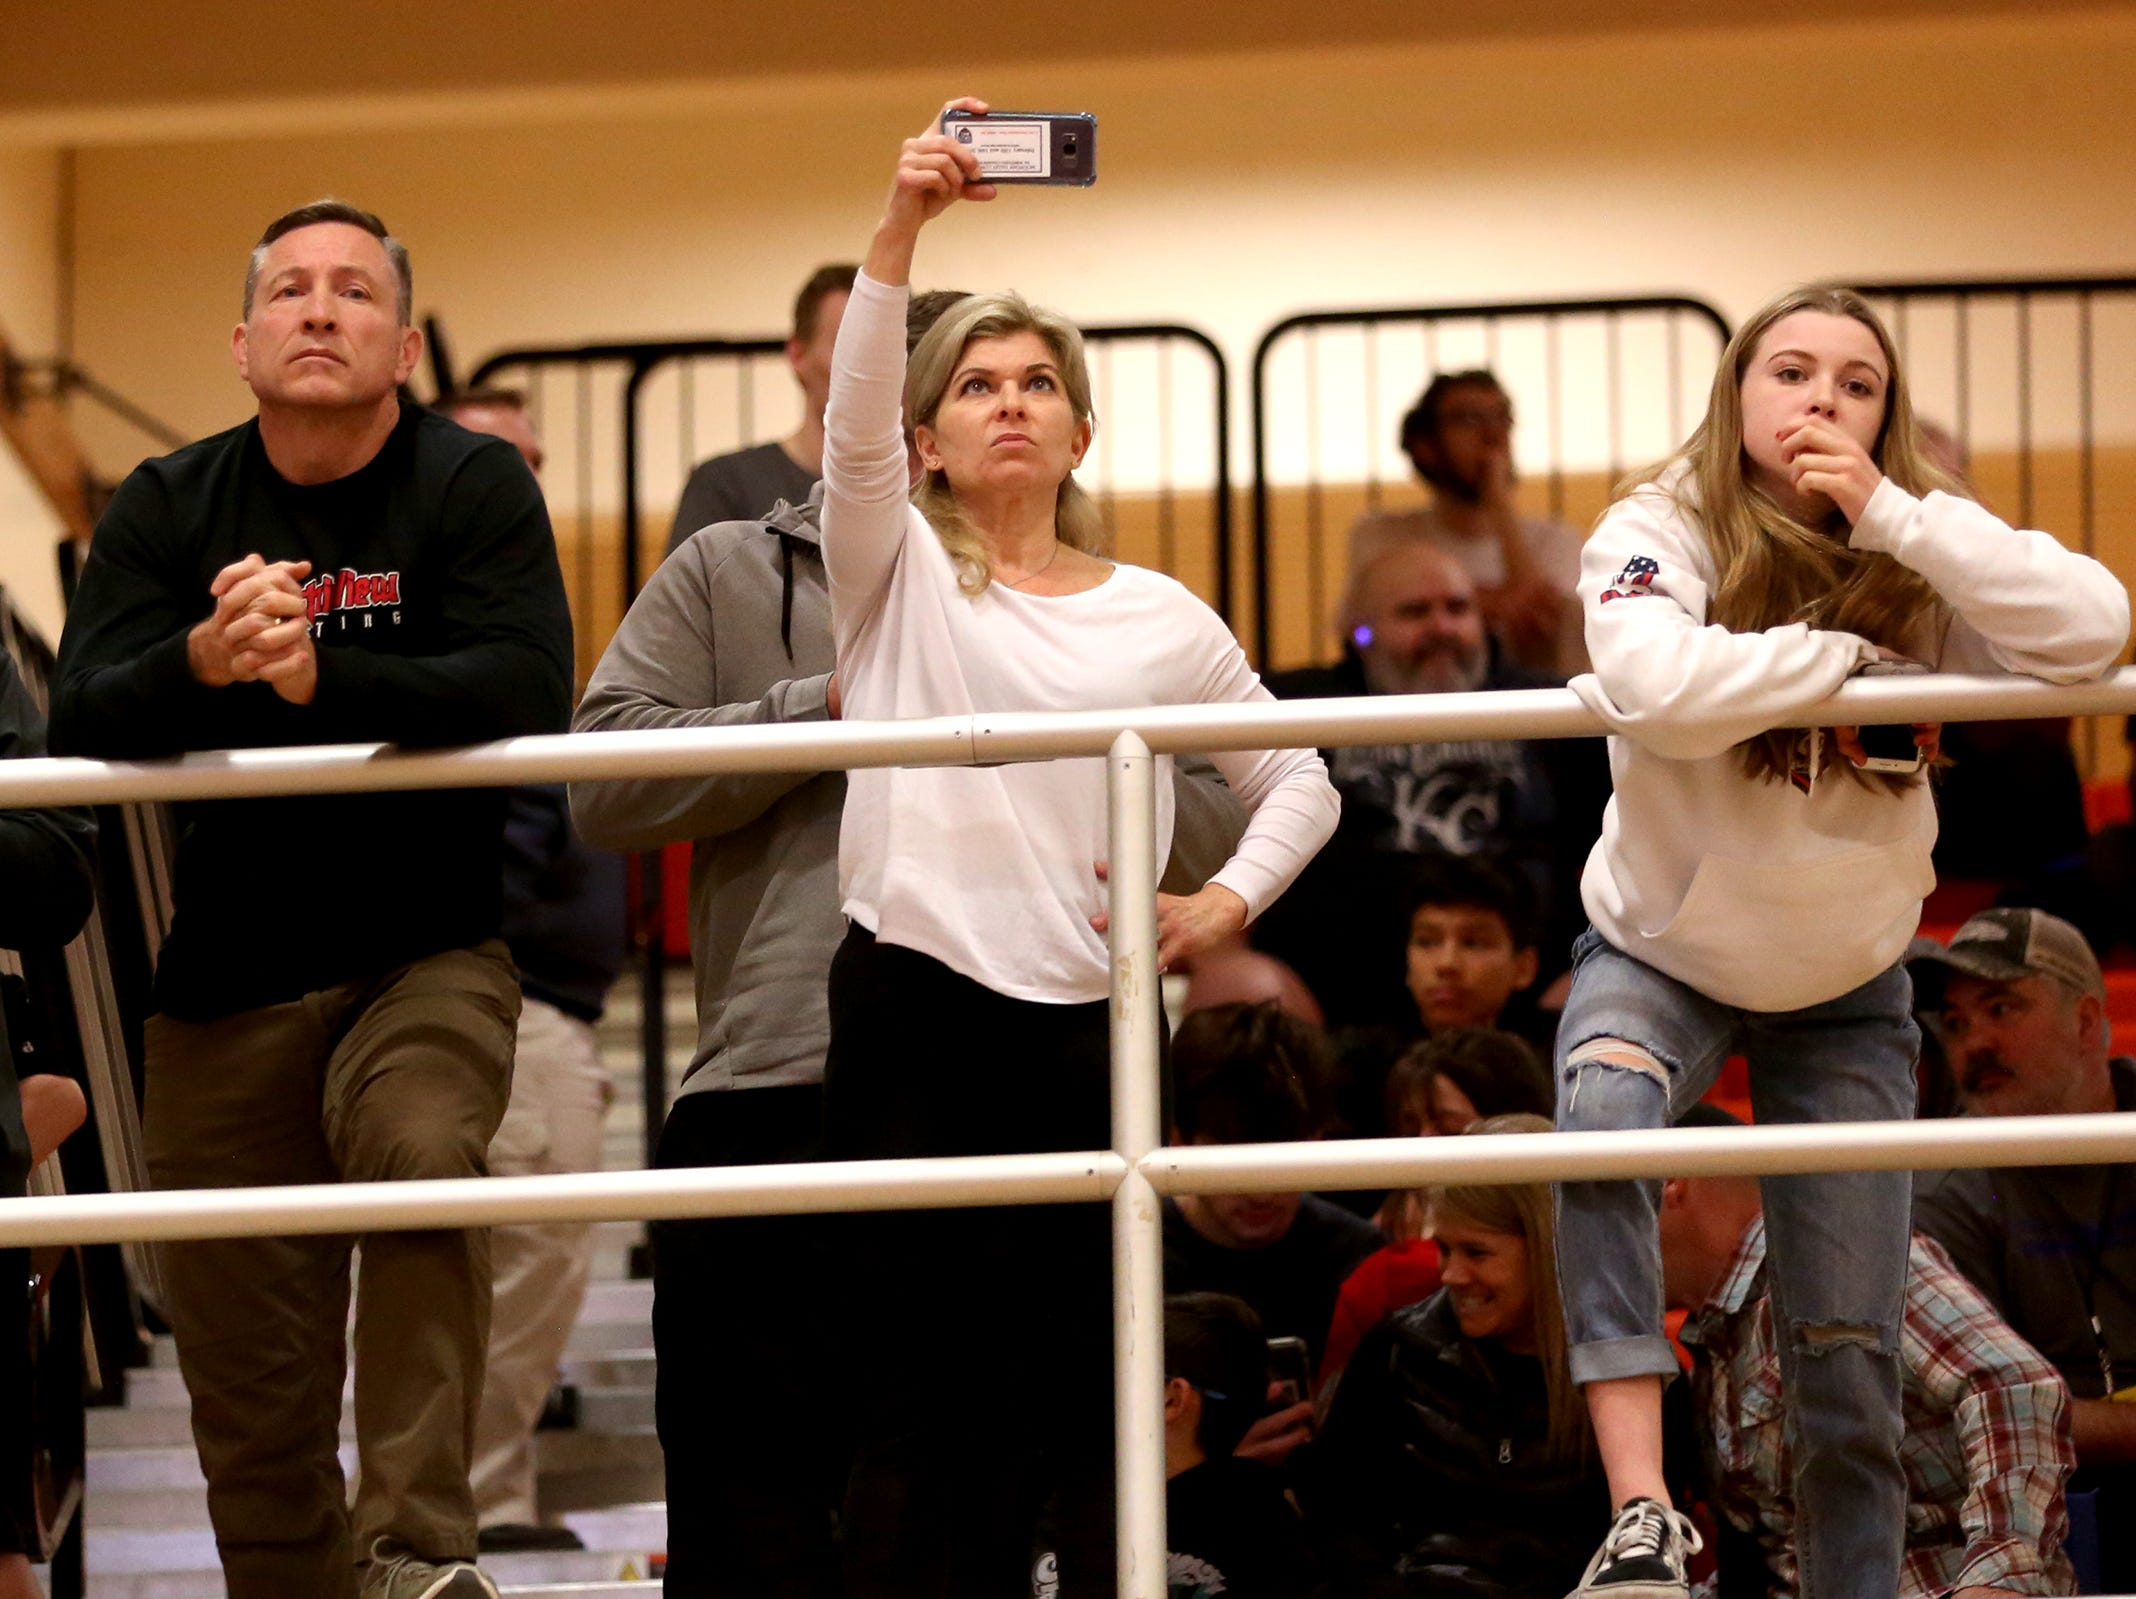 Spectators watch the Mountain Valley Conference district wrestling tournament at Sprague High School in Salem on Friday, Feb. 15, 2019.